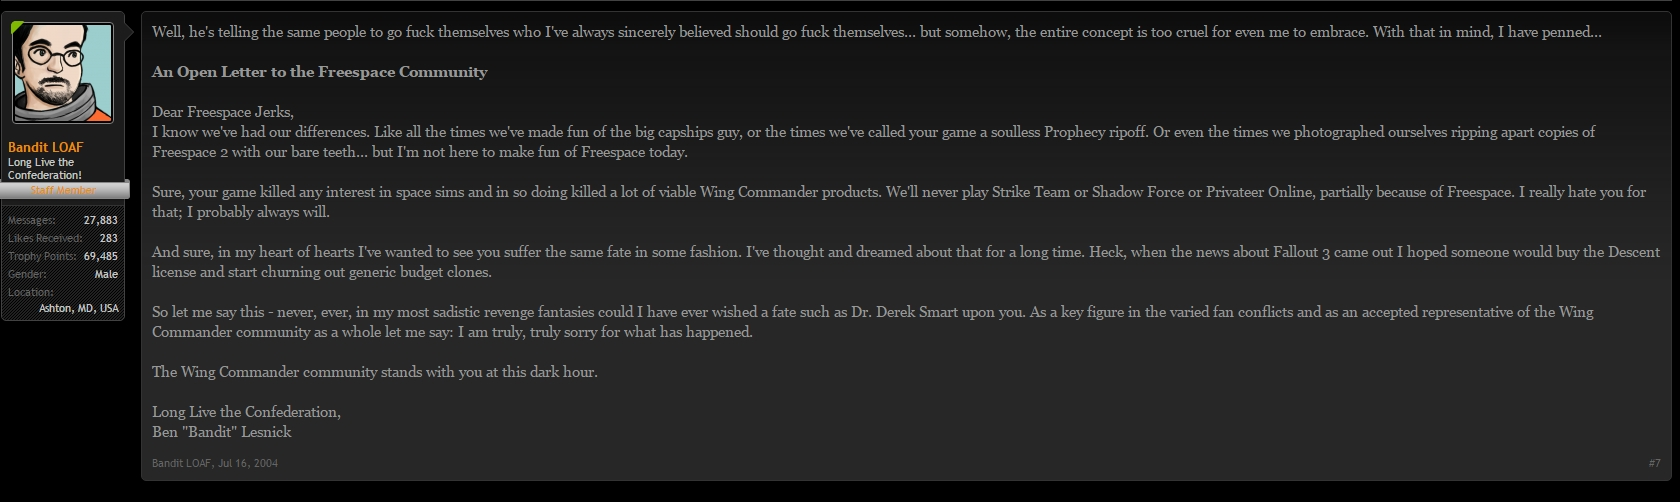 Star Citizen The Fidelity Of Failure Rejeki Tcash Sony Playstation 4 Call Duty Infinite Warfare When Rumors Were Going Around That I Was Attempting To Do A Freespace Game This Is His Comment On Official Forums Last July After My First Blog